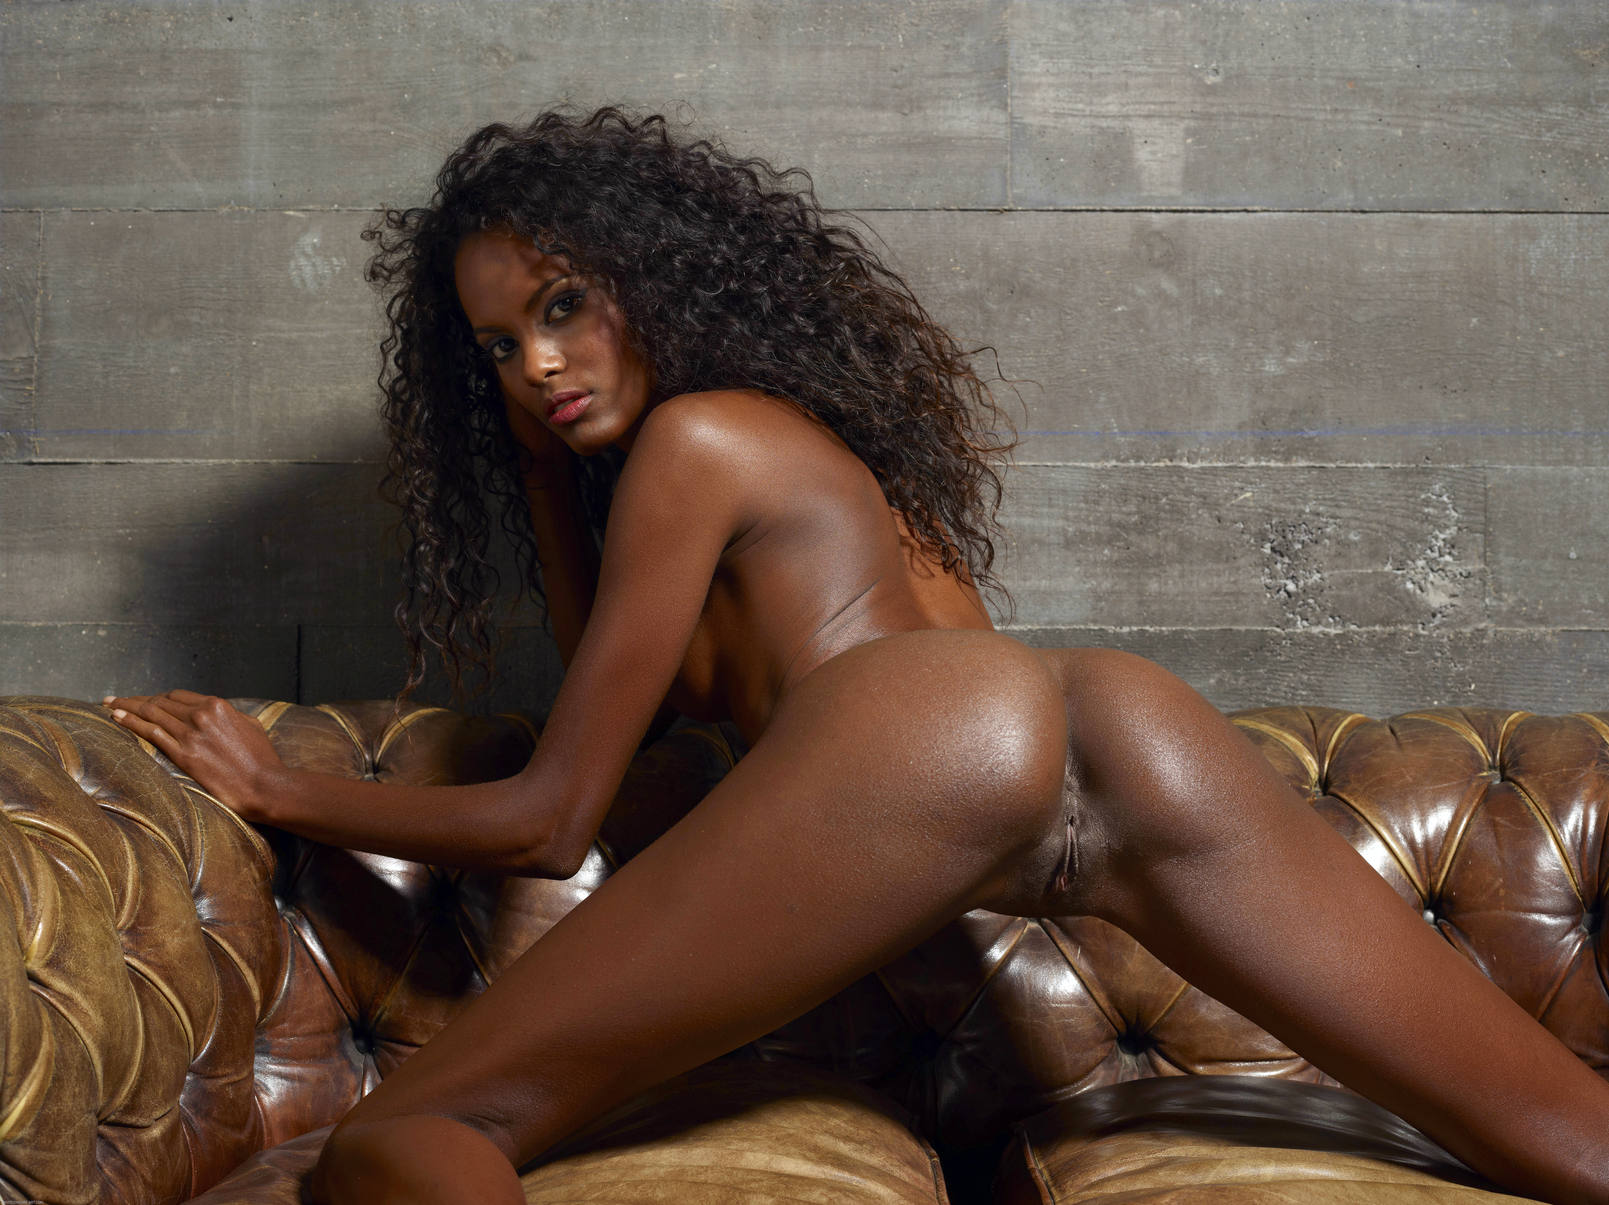 ebony nude woman